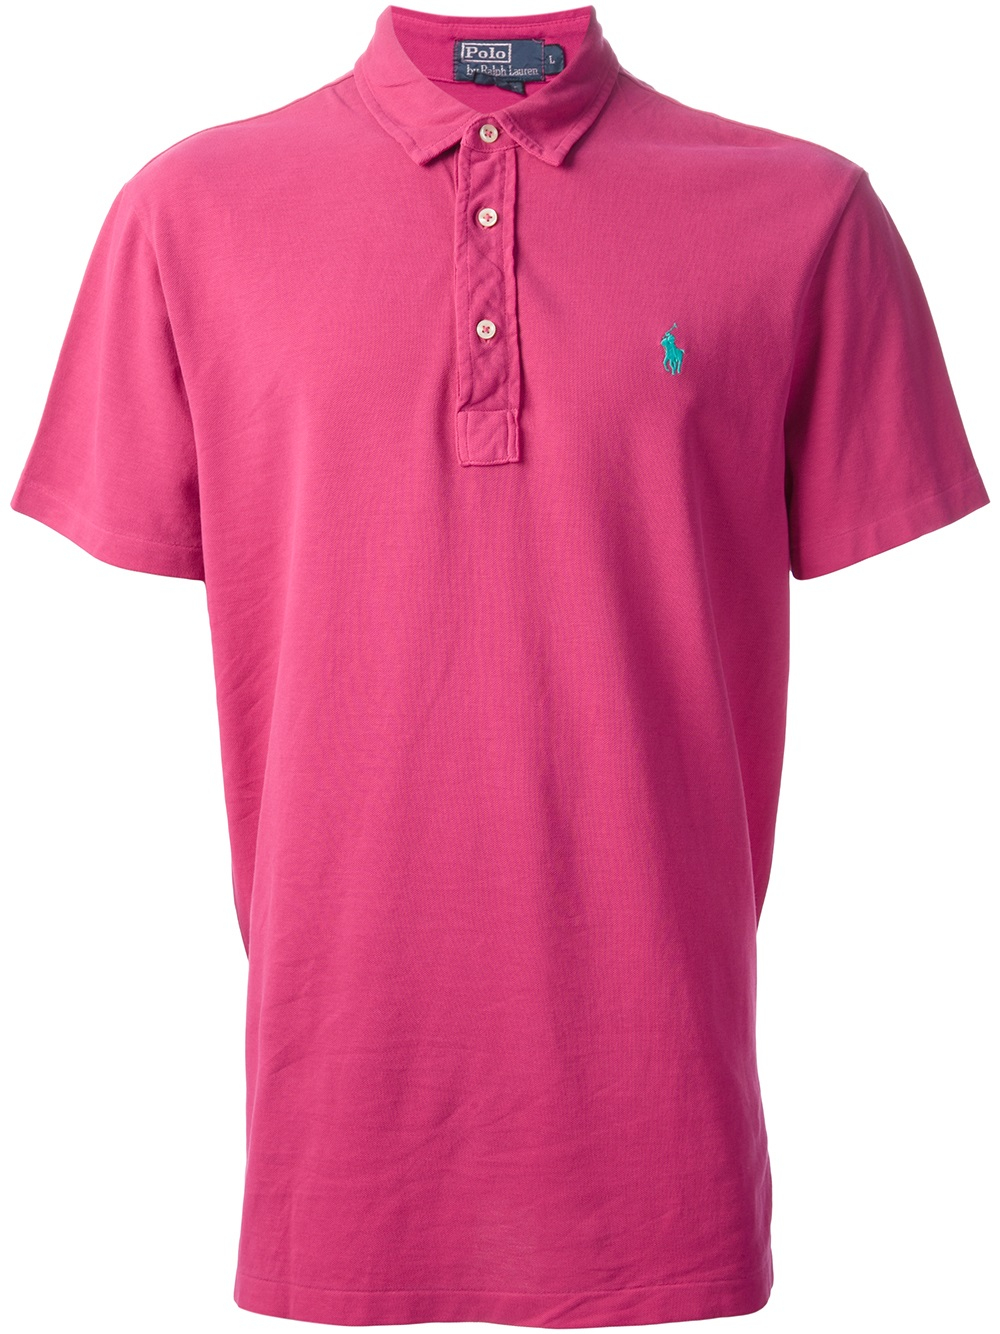 Polo Ralph Lauren Classic Polo Shirt In Pink For Men Pink